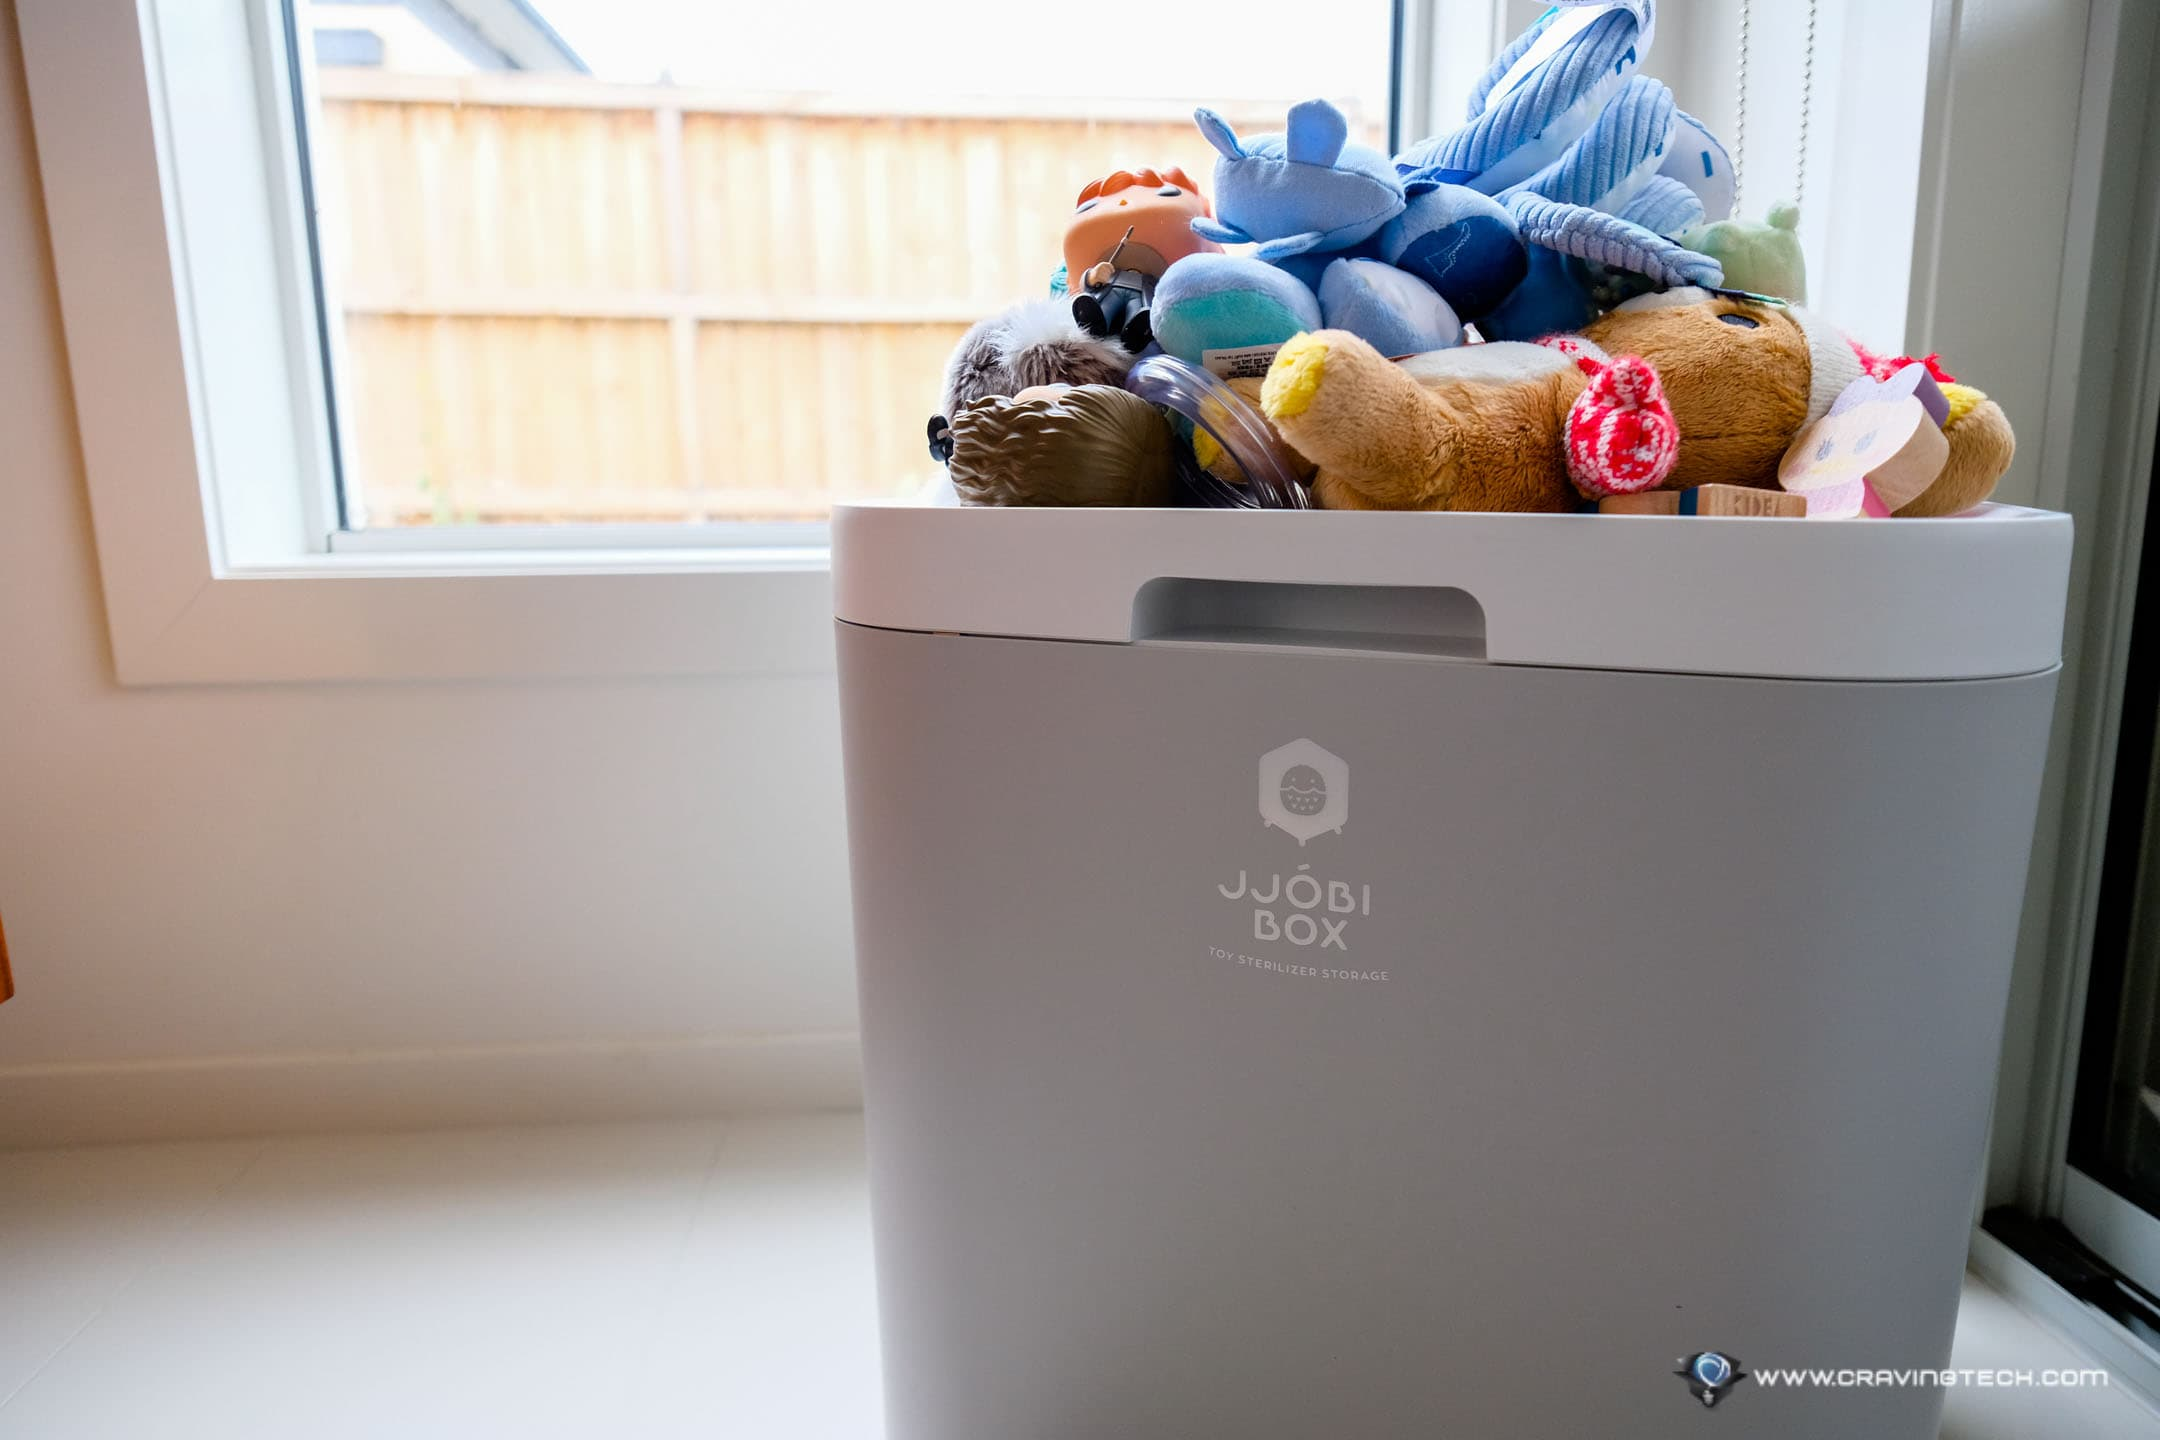 This handy storage box stores & sterilises your stuffs at home  – JJOBI Toy Steriliser BOX Review